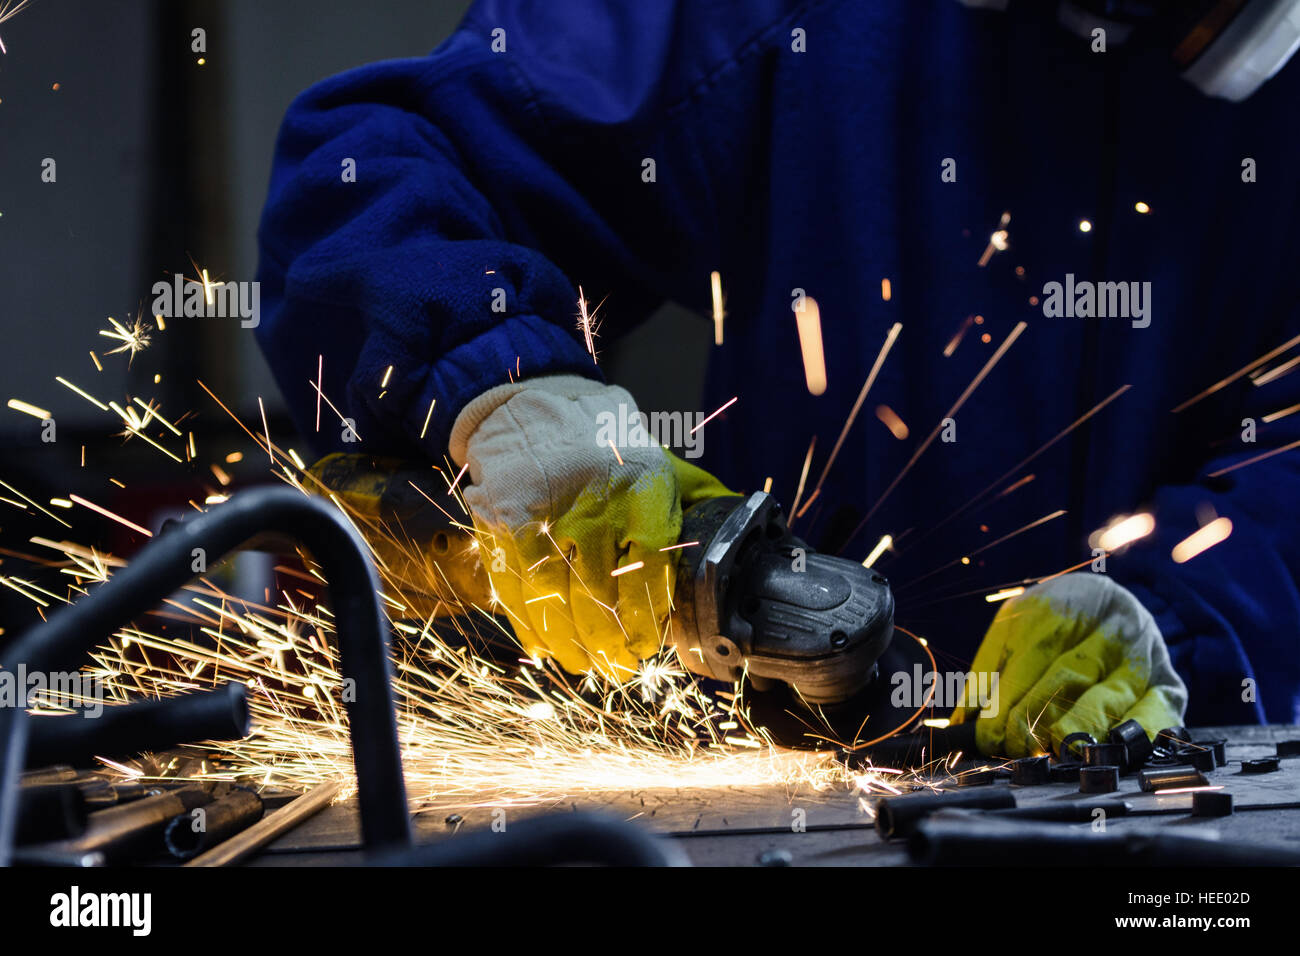 Worker cutting metal on an work table by angle grinder machine tool, generating a flash of hot sparks - Stock Image